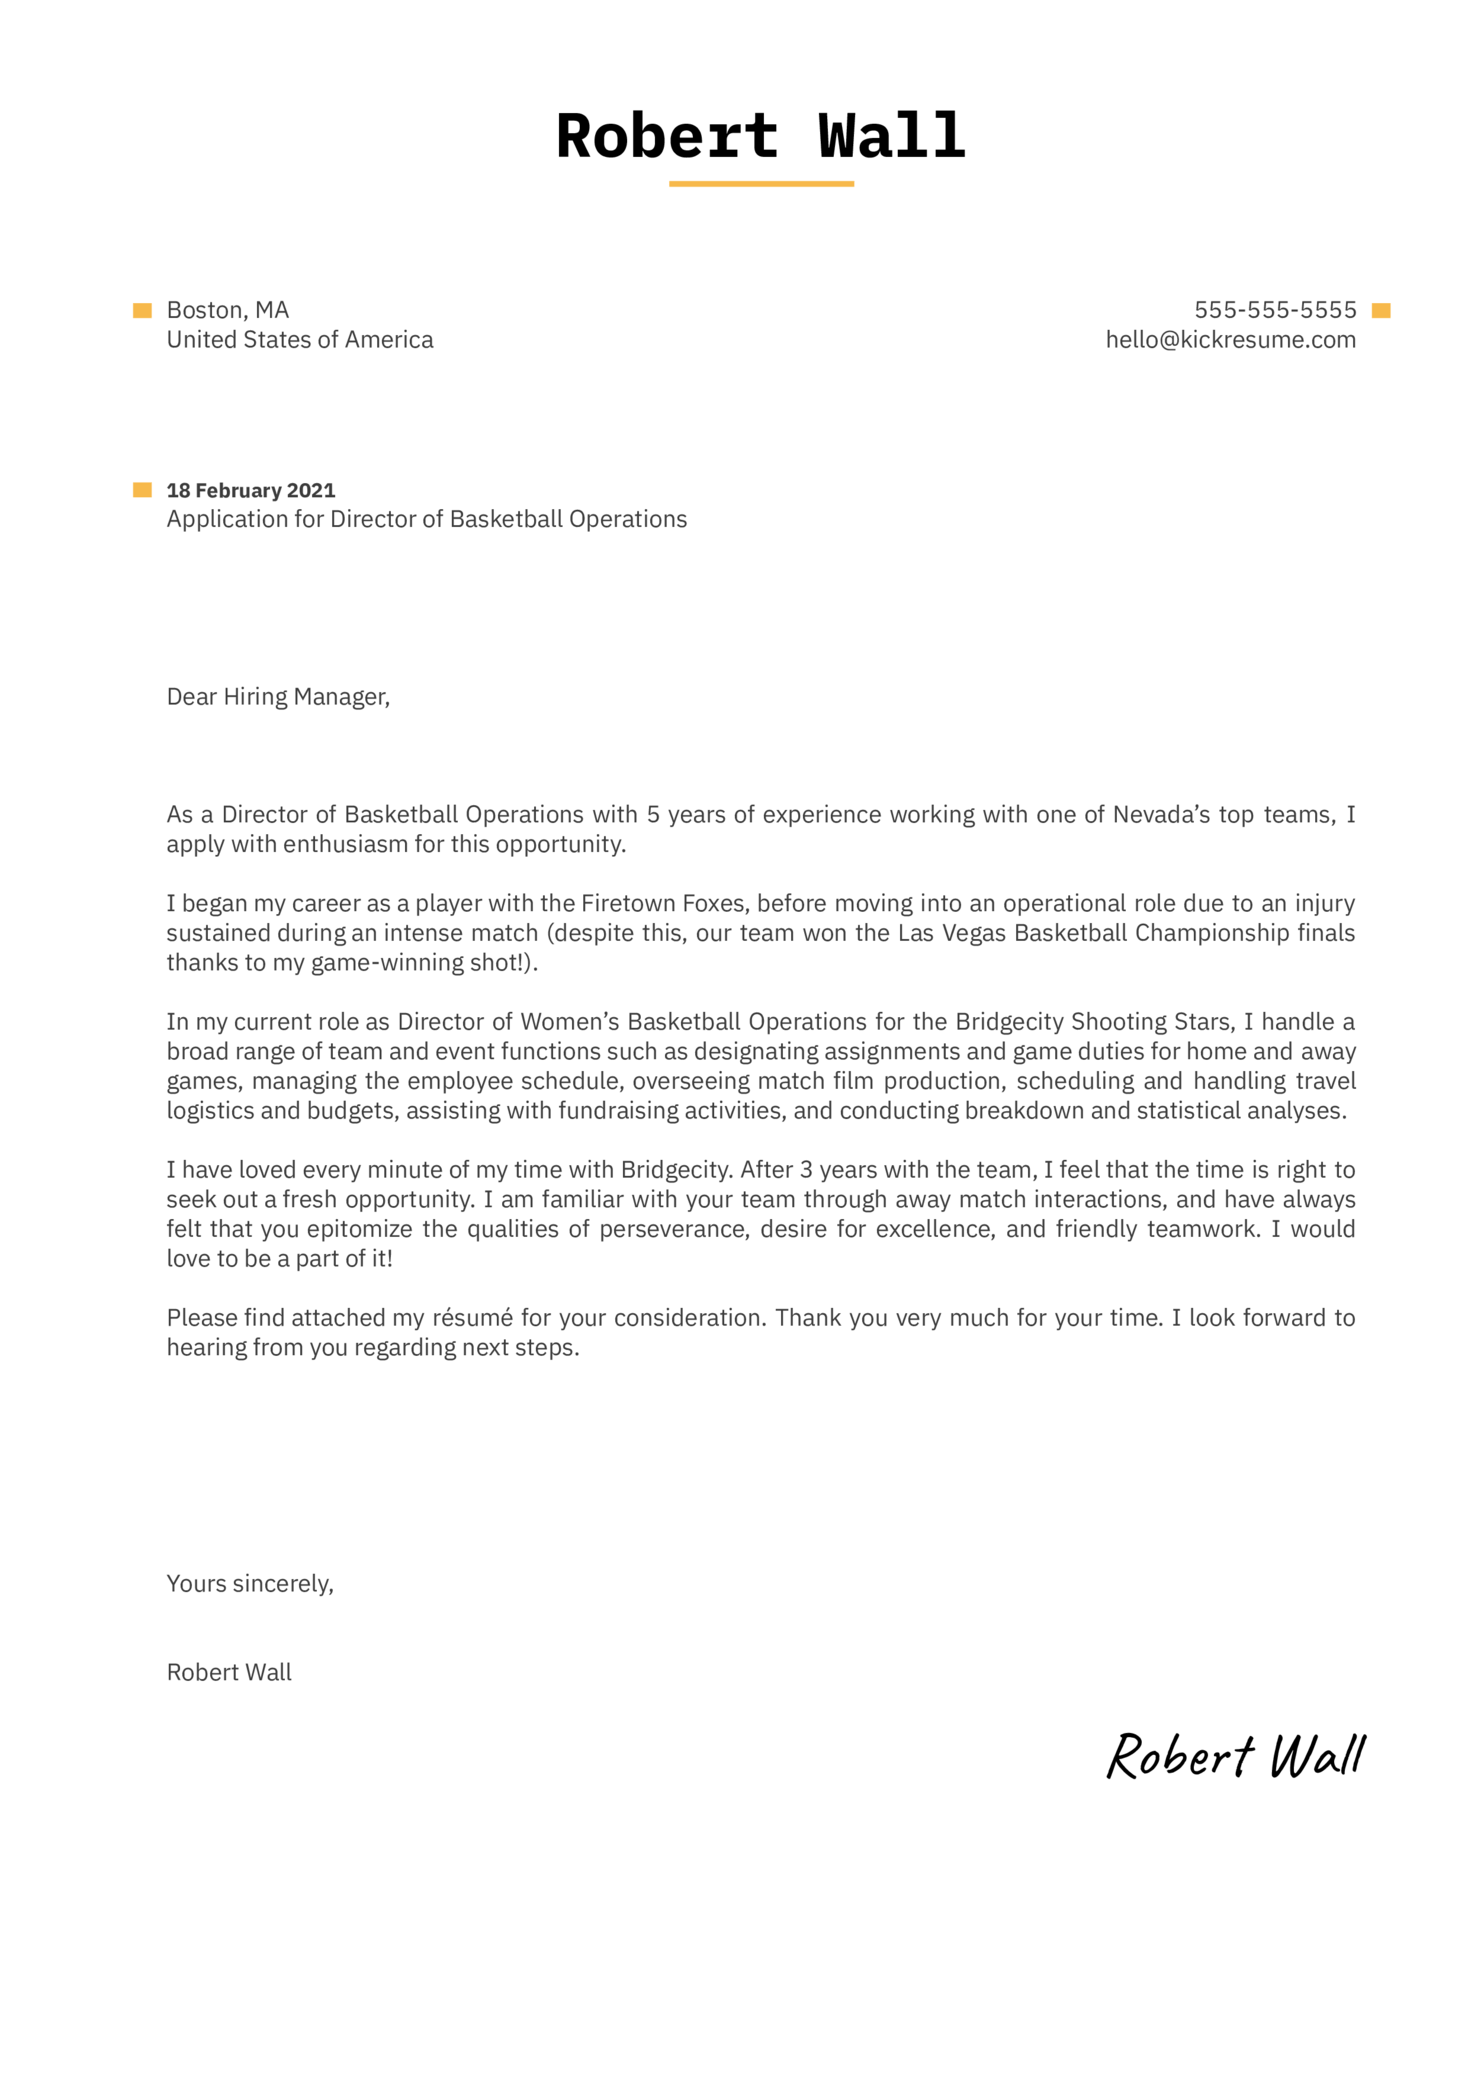 Director of Basketball Operations Cover Letter Template